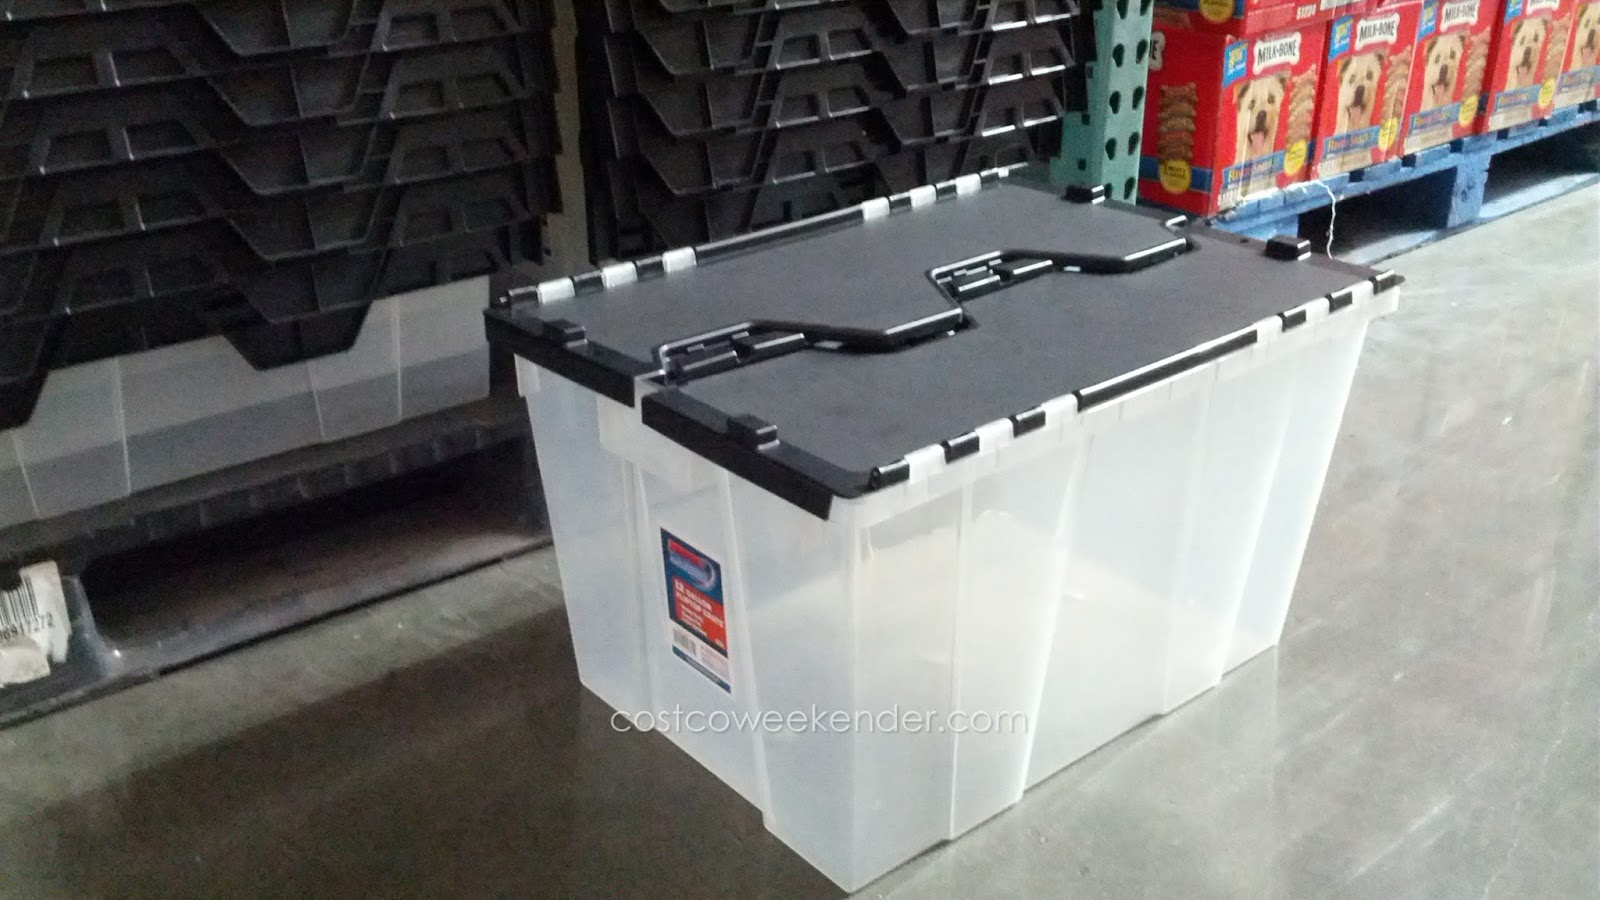 Incredible Solutions 12 Gallon Fliptop Crate provides storage for your household things & Incredible Solutions 12 Gallon Fliptop Crate | Costco Weekender